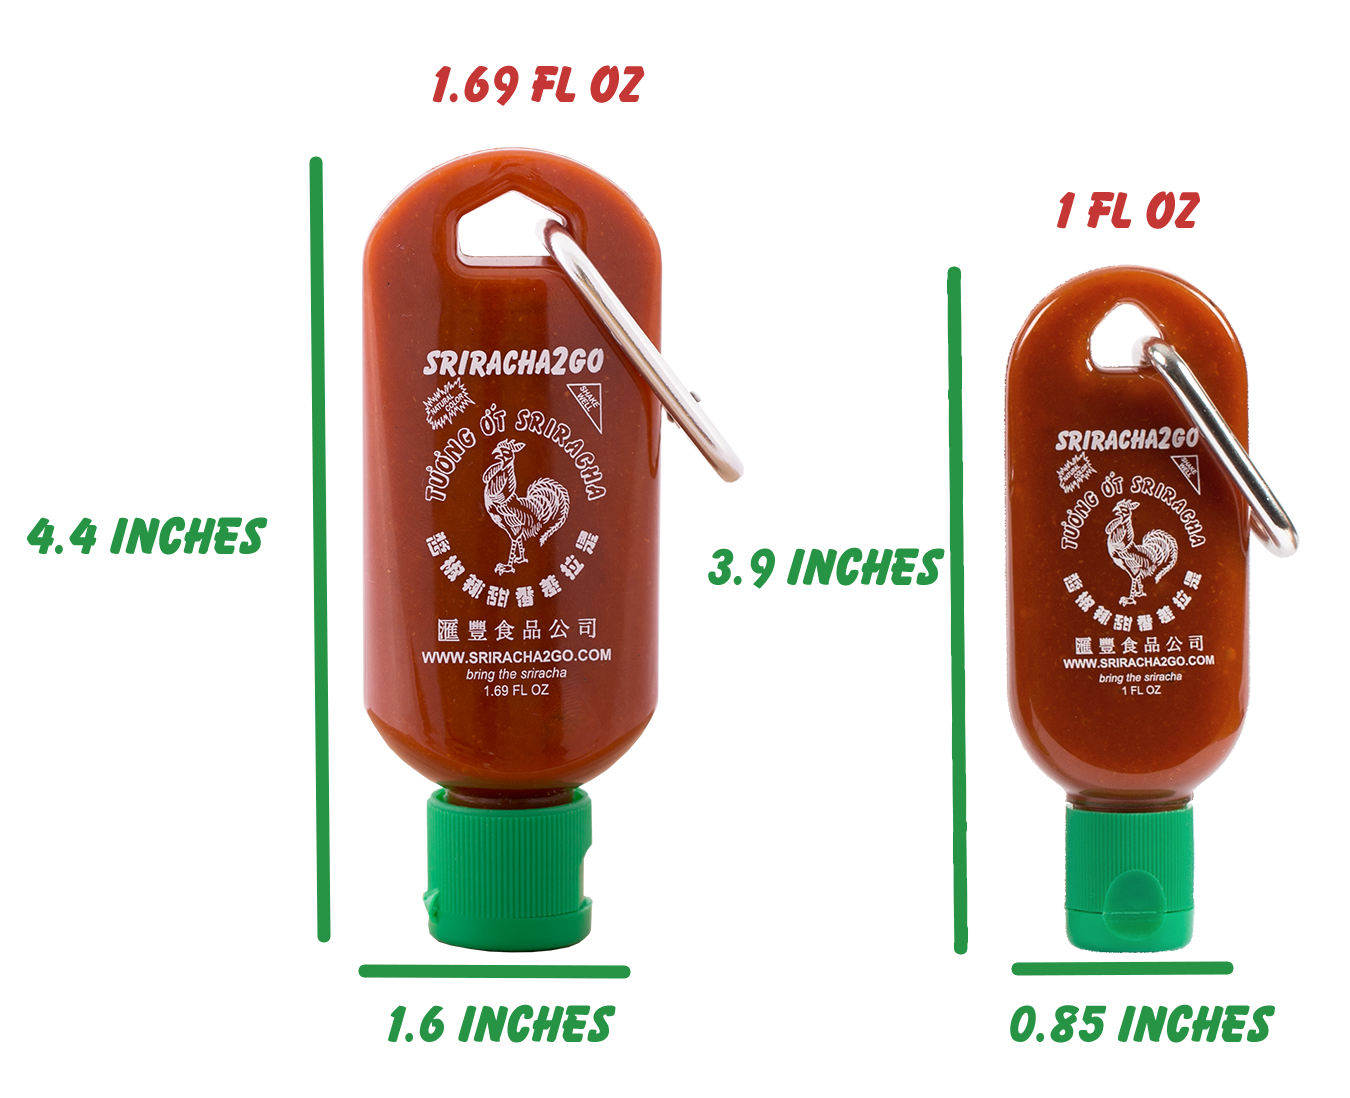 Sriracha 2 Go Size Comparison Rulers